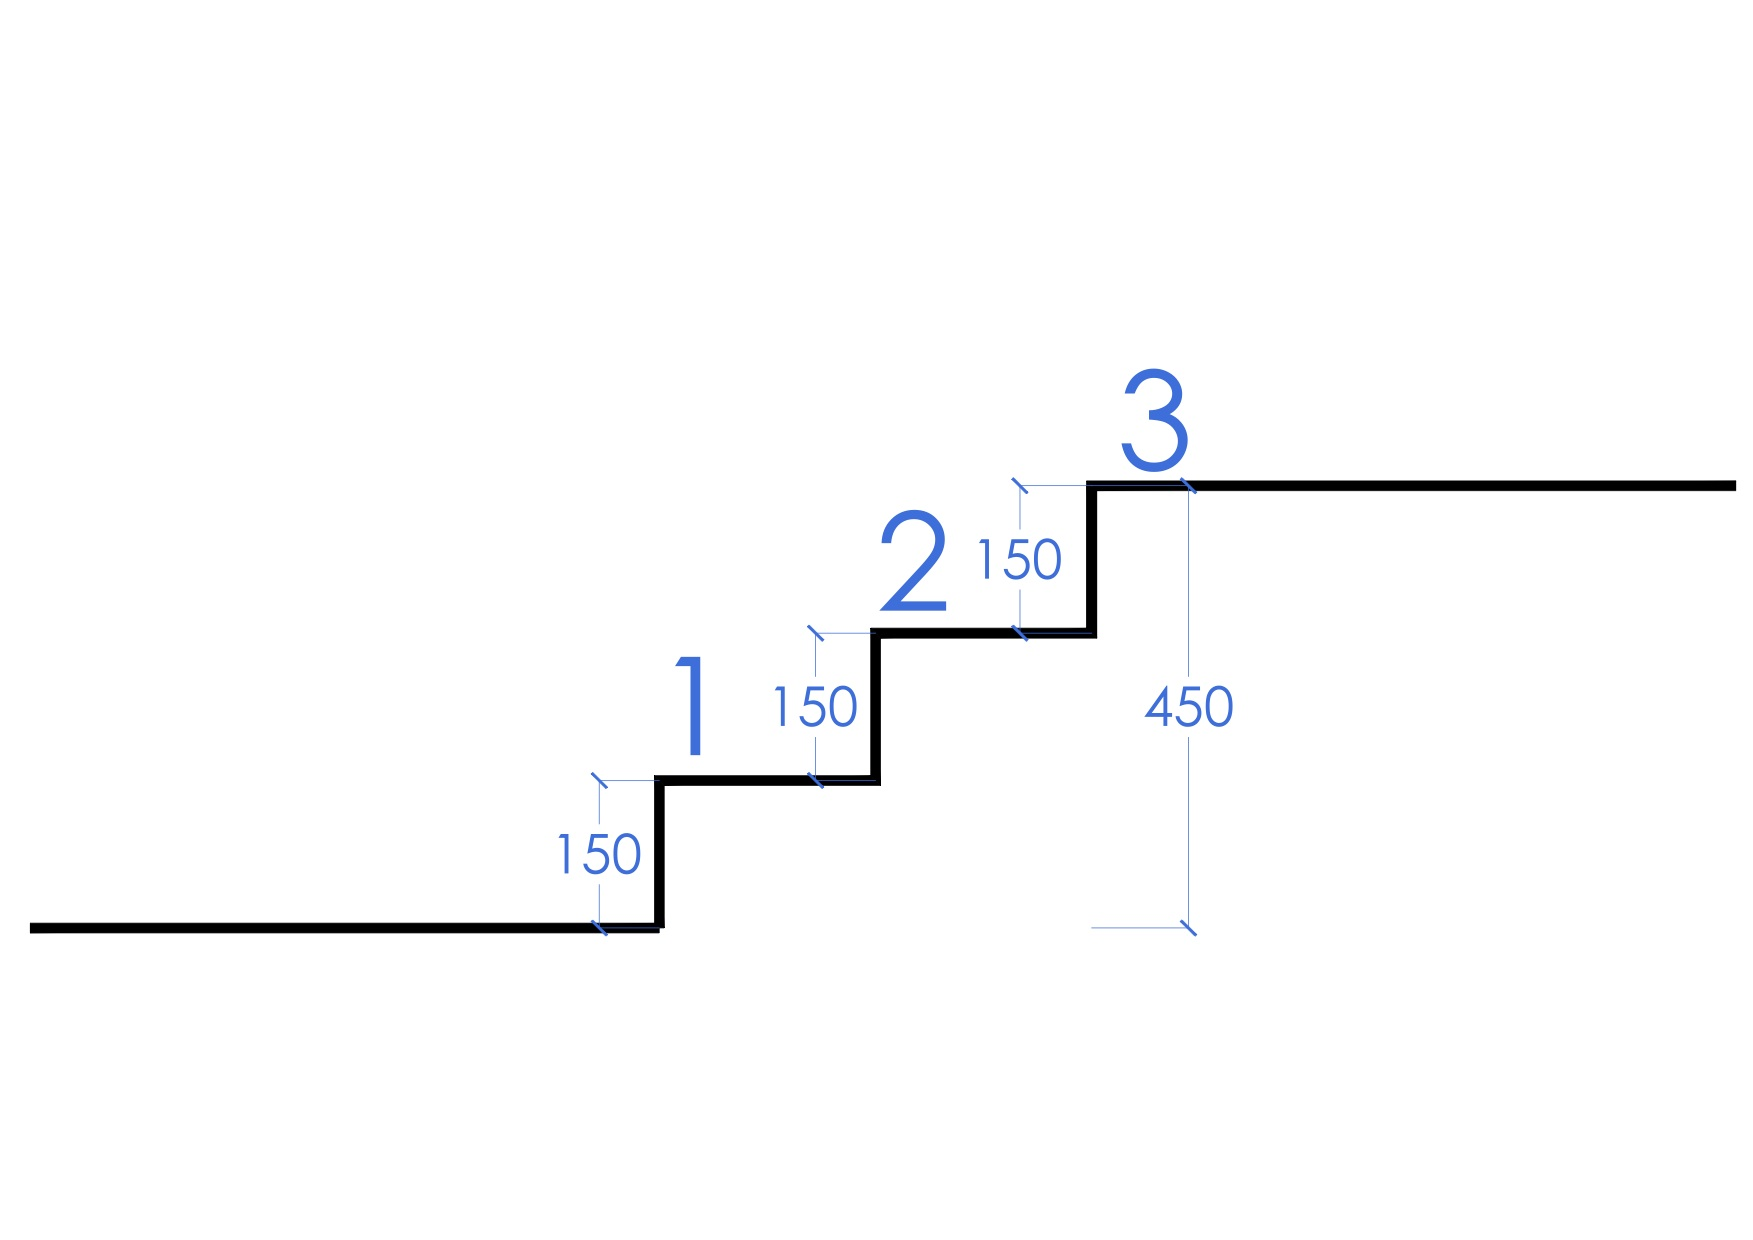 How to calculate stairs first in architecture 450 stairs 02 sciox Images